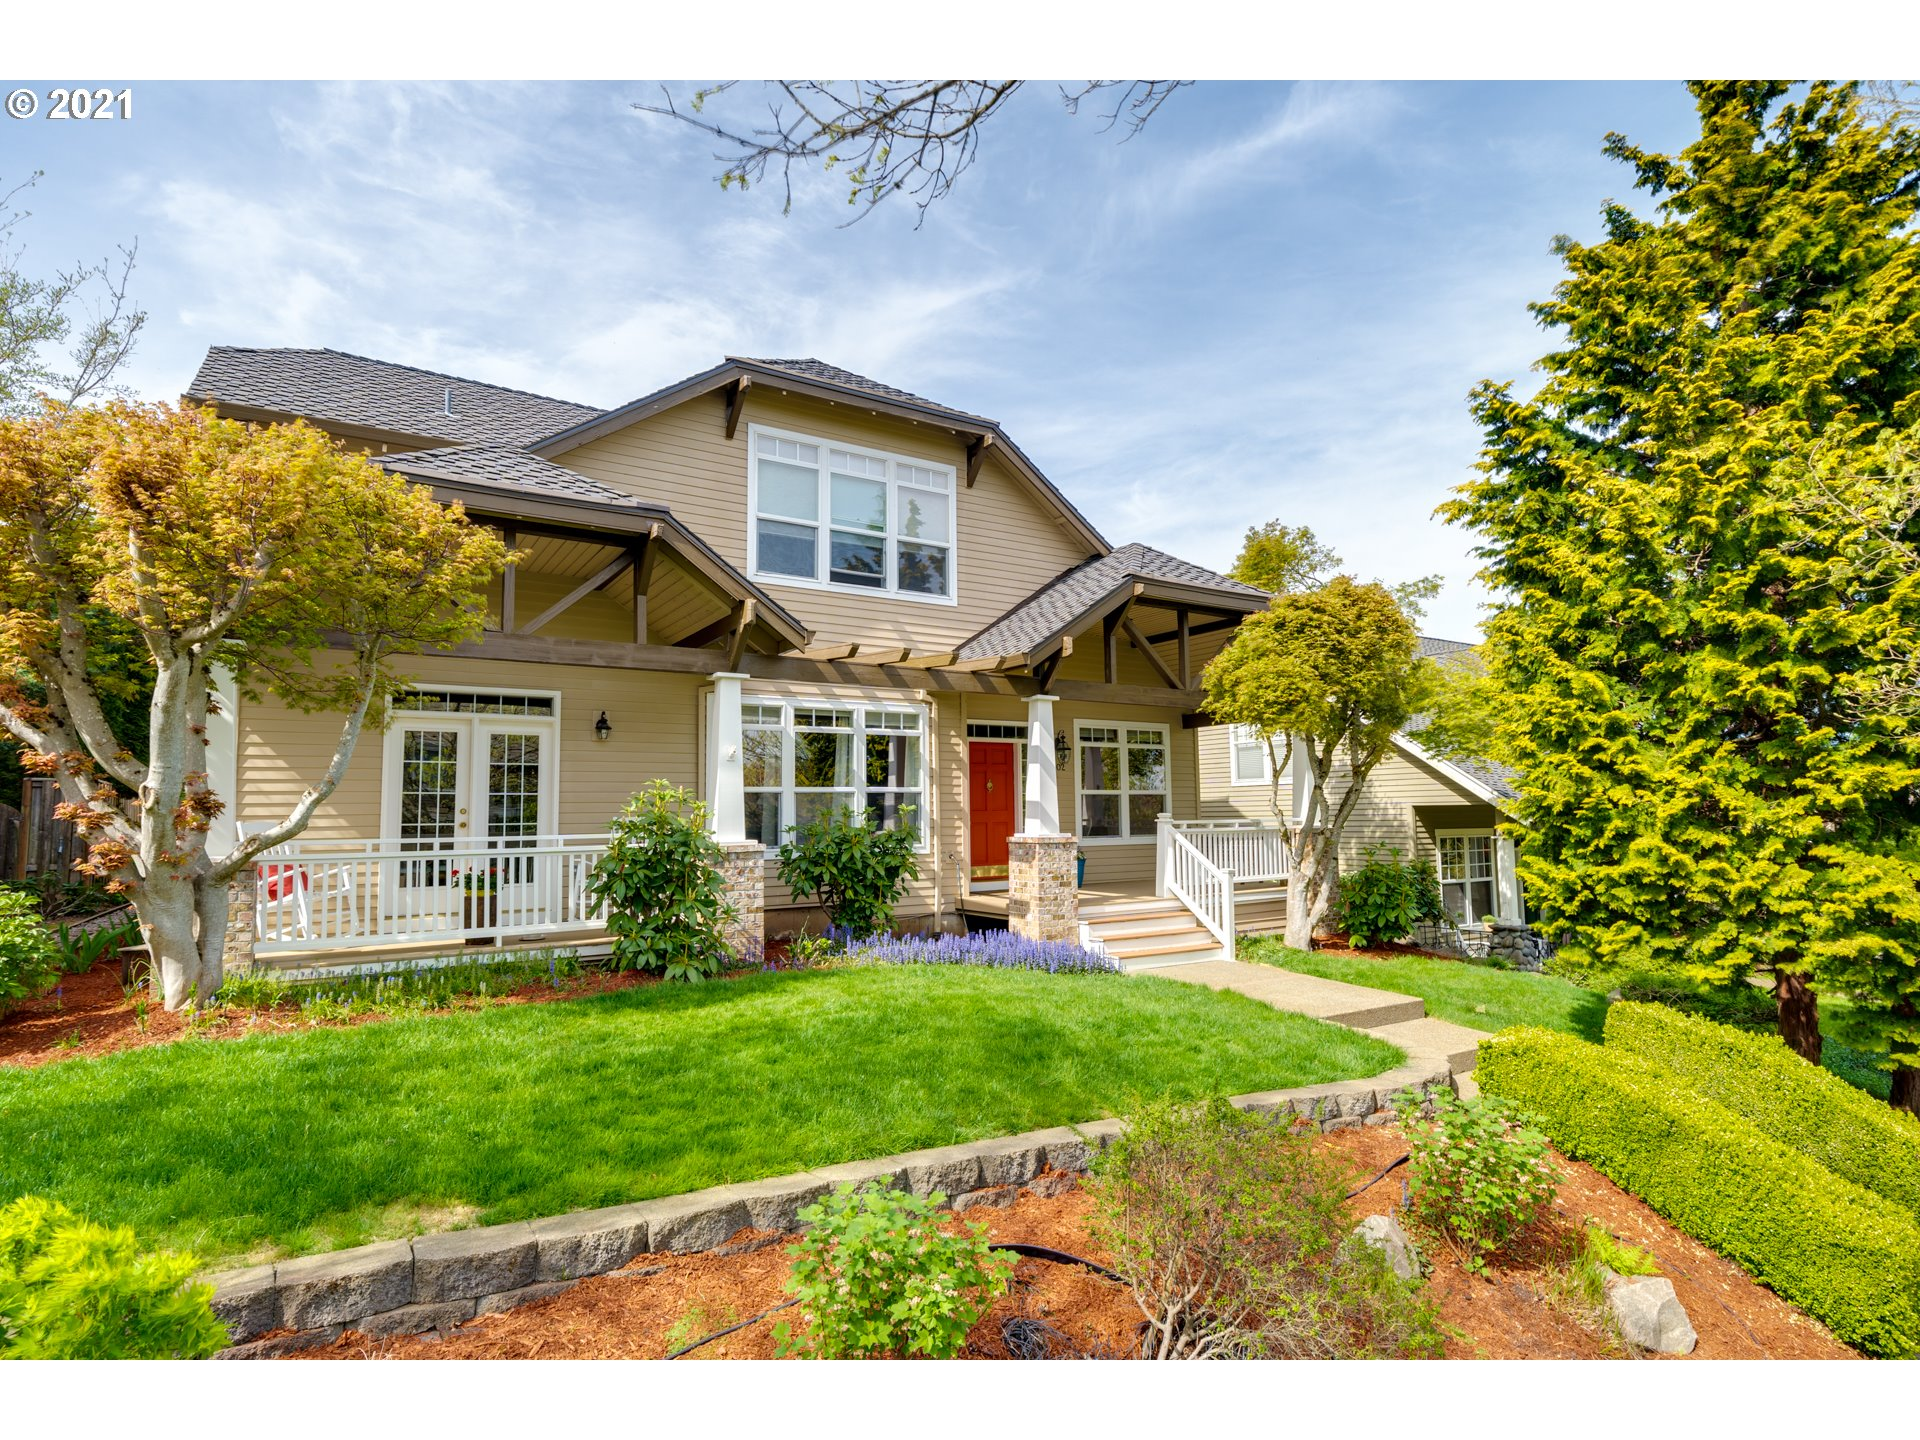 This lovely Cascade Summit home reflects a true pride of ownership.  Meticulously maintained & cared for, showcasing an updated owners suite bathroom as well as updated kitchen. Spacious bonus room could function as fourth bedroom. Presidential 50 year comp roof in 2016, enlarged entertainer's patio, newer exterior & interior paint. Short walk to community pool, park & shopping area.  Open Sat. 3-5 pm. Sunday 2-4 pm. Delightful, inviting and one you will not want to miss!